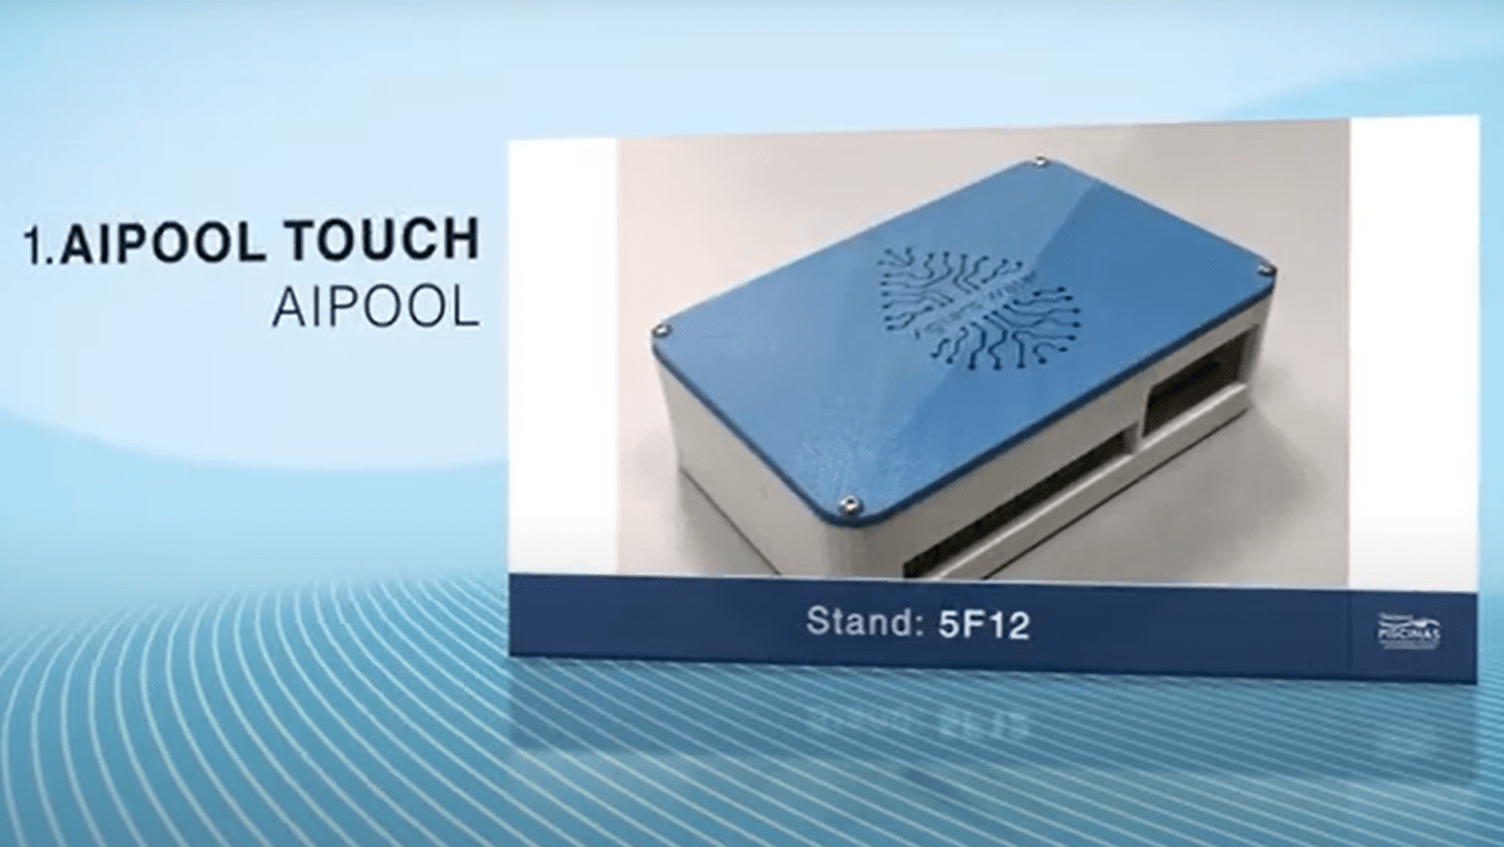 AipoolTouch